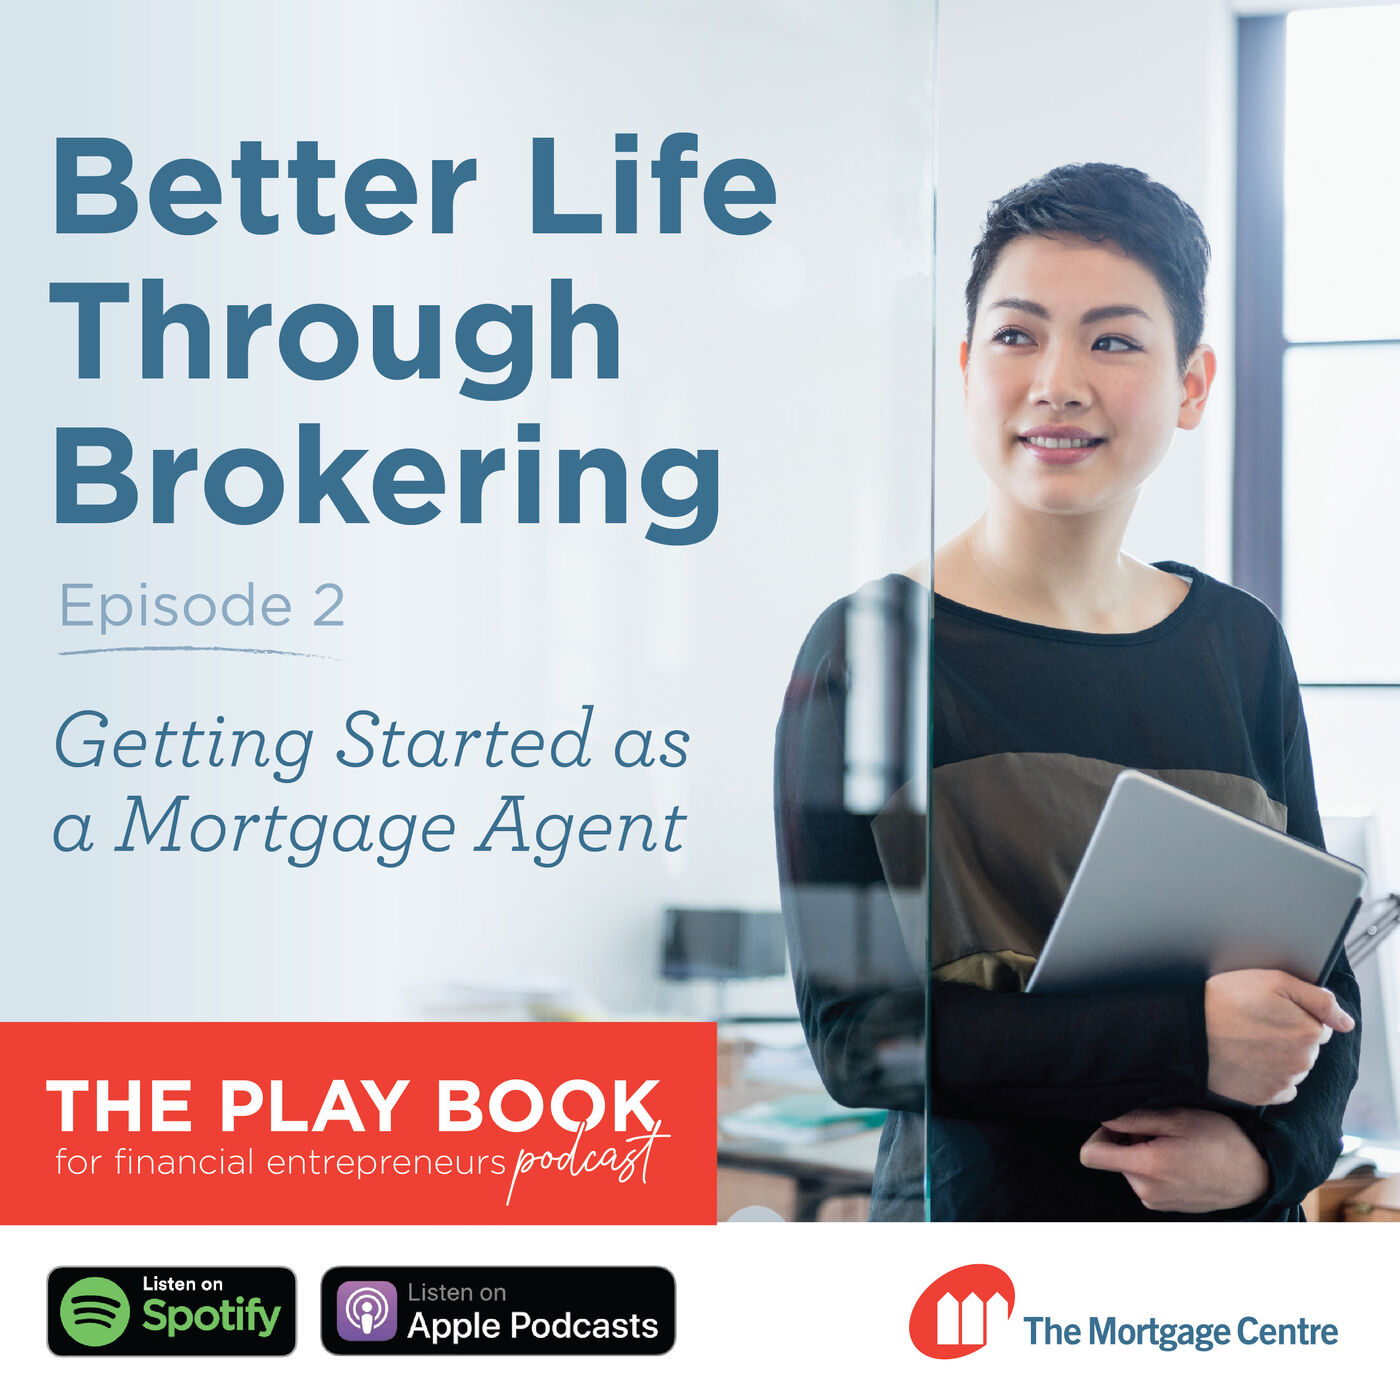 Getting Started as a Mortgage Agent